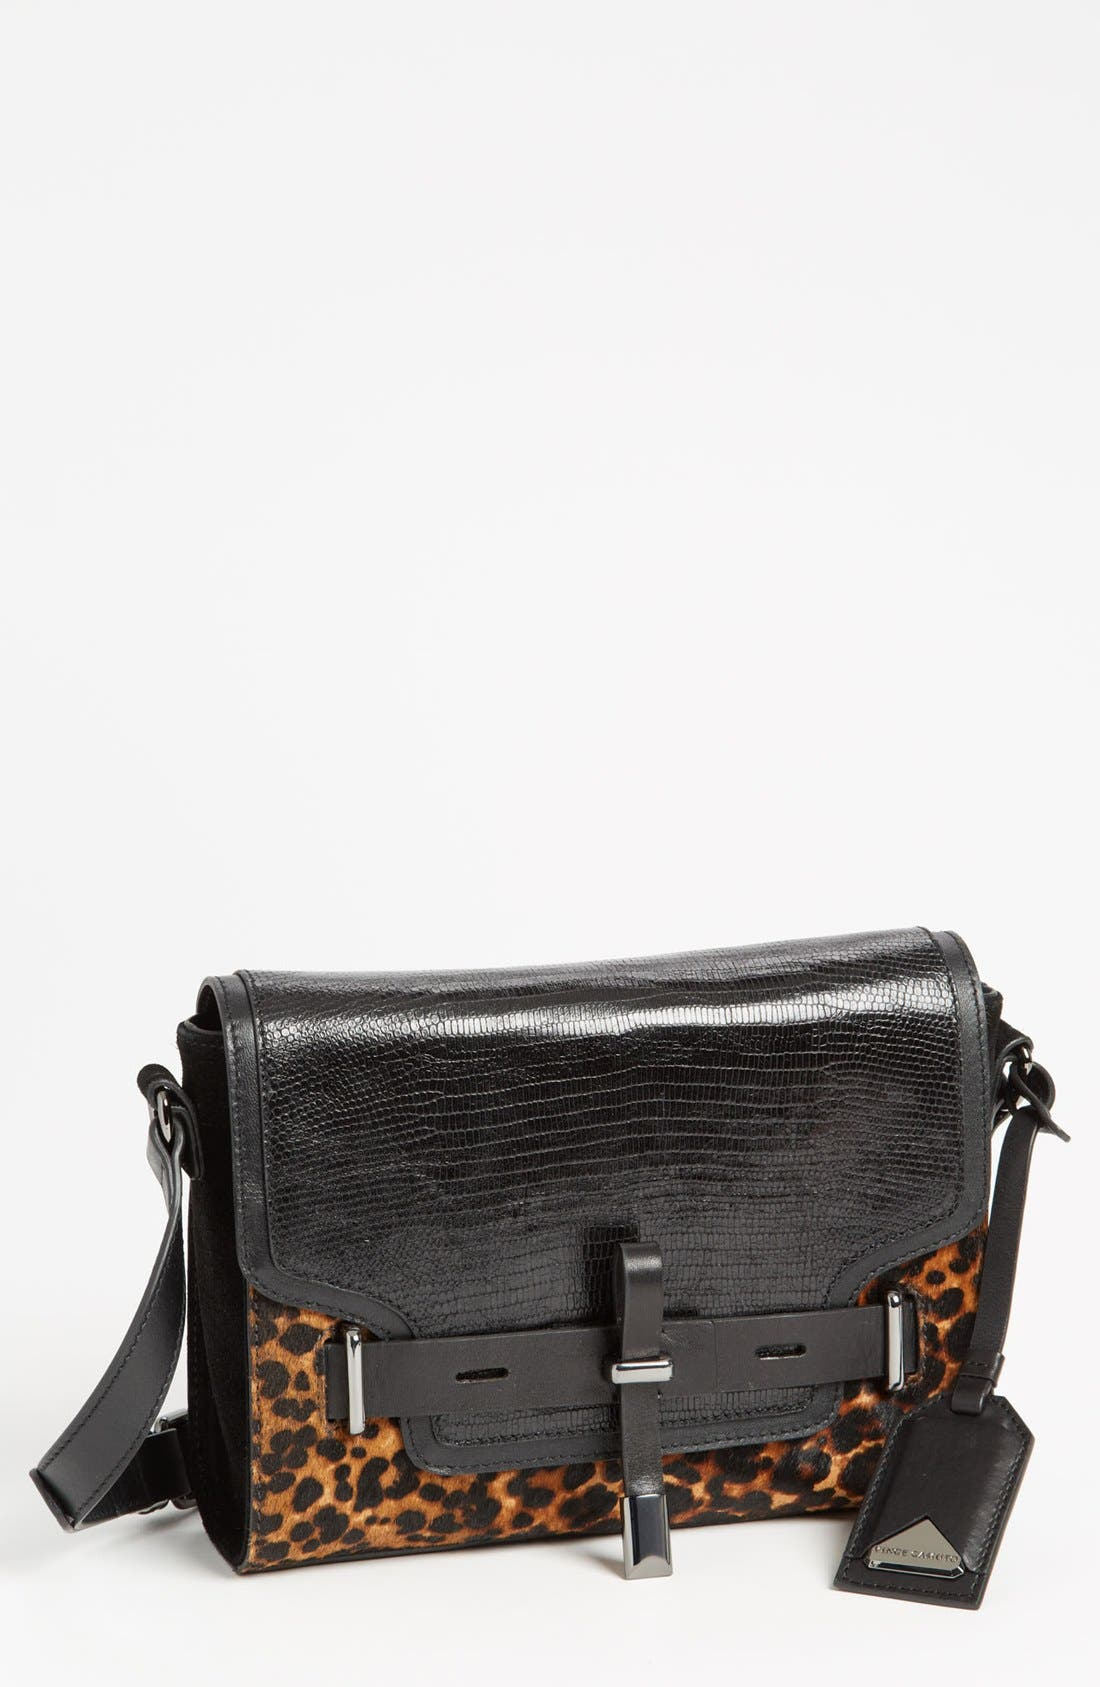 Main Image - Vince Camuto 'Max' Leather Crossbody Bag, Small